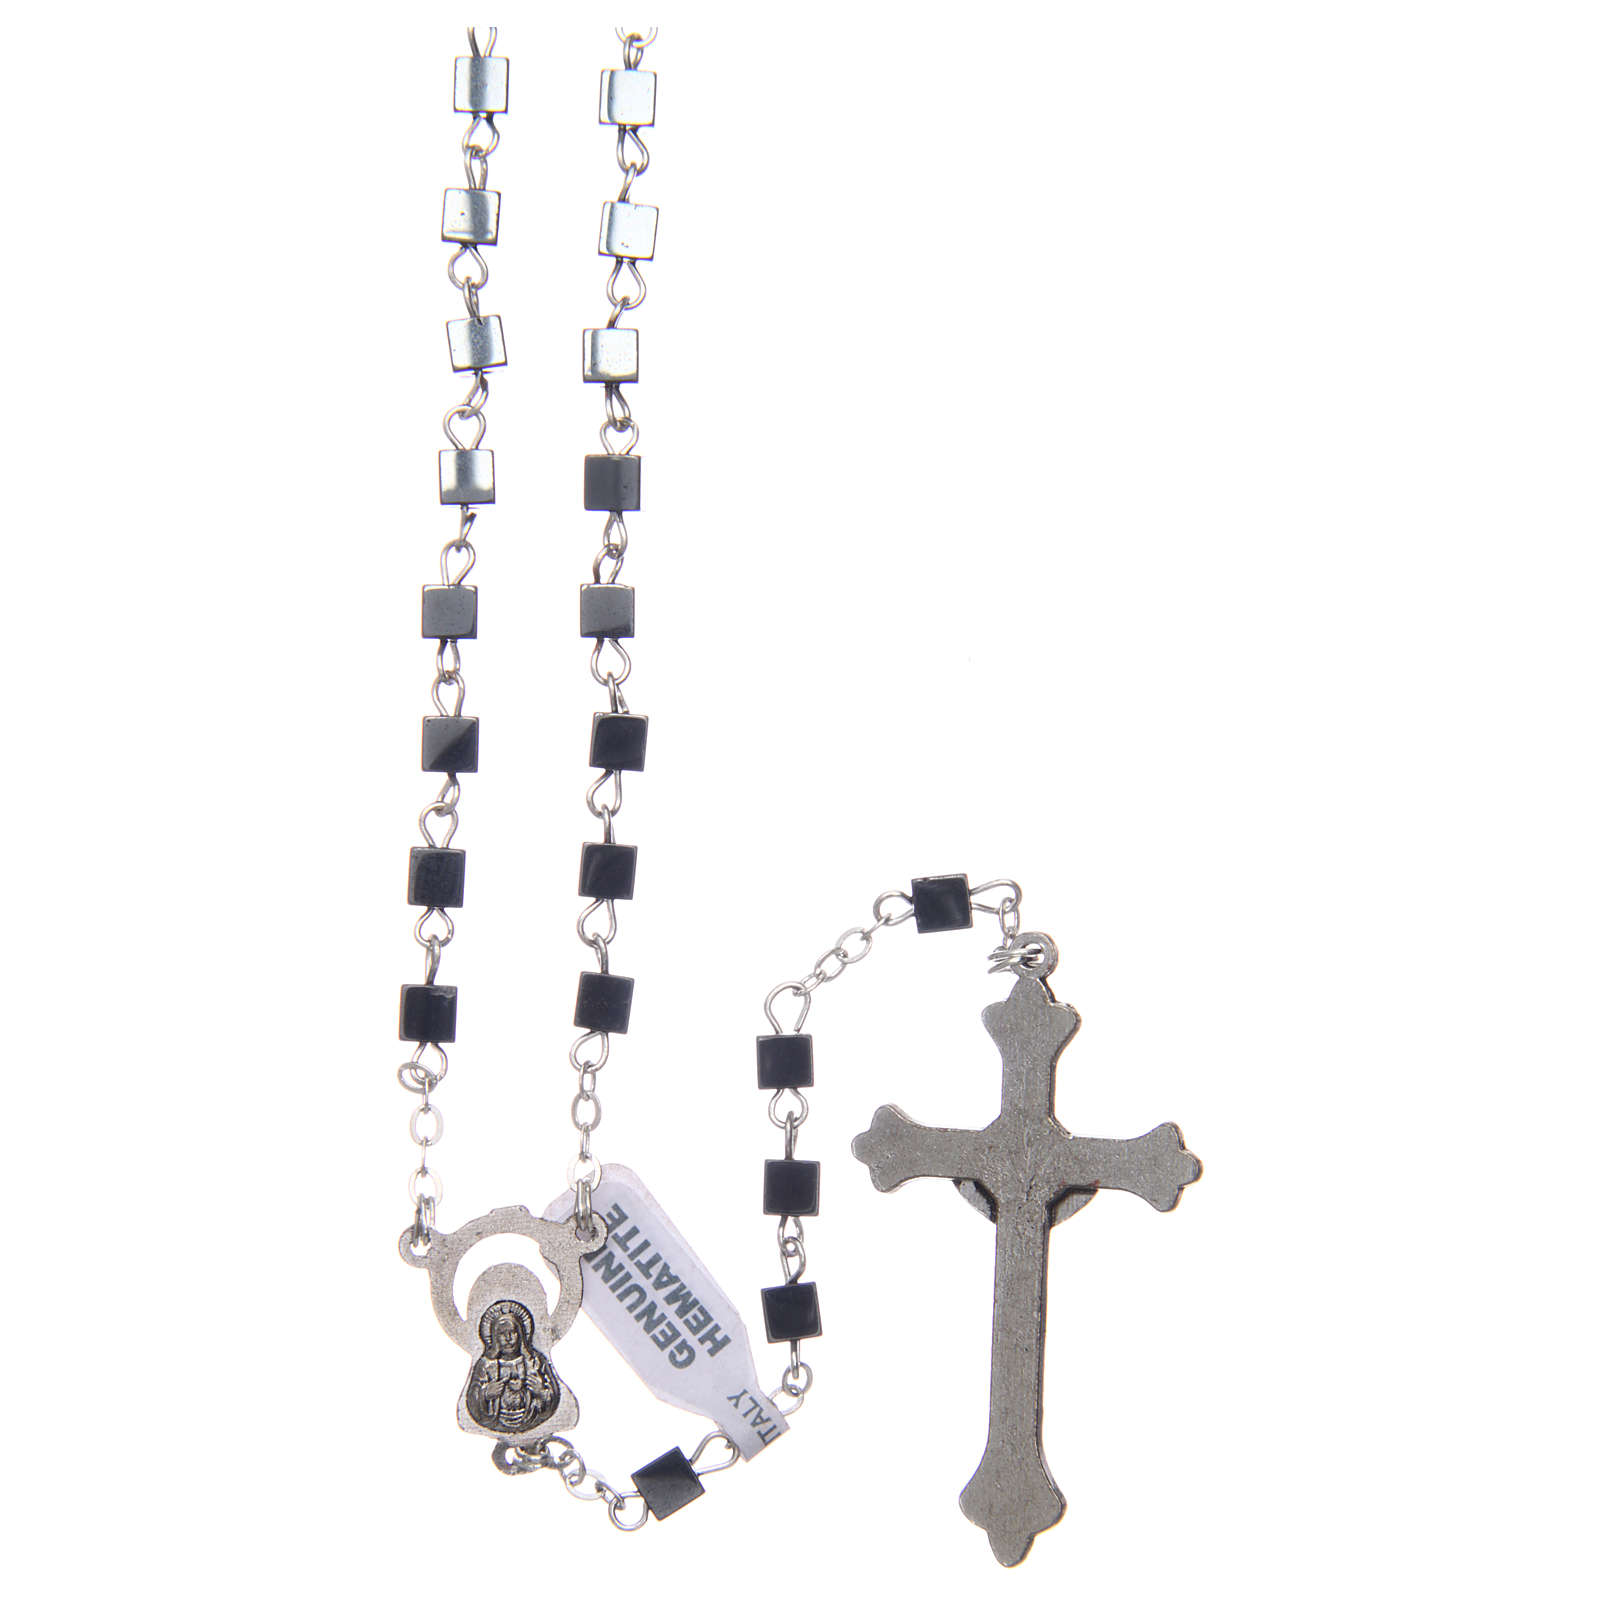 Hematite rosary with square beads 4 mm 4